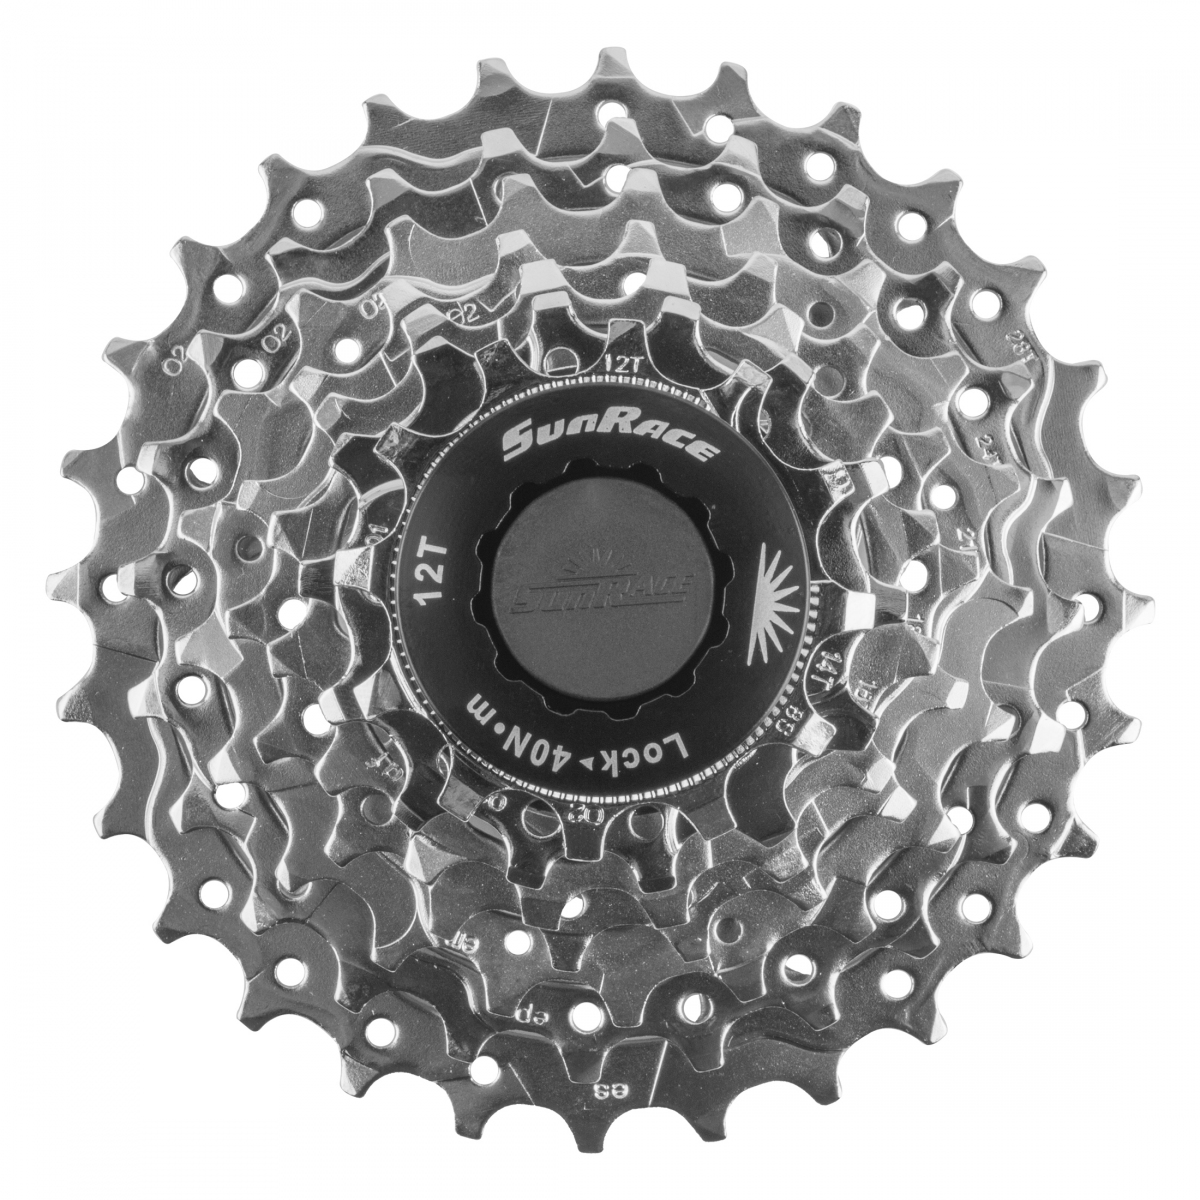 Search Results Sproket 8 Speed Shimano Hg 31 11 34t Cs M63 Cassette